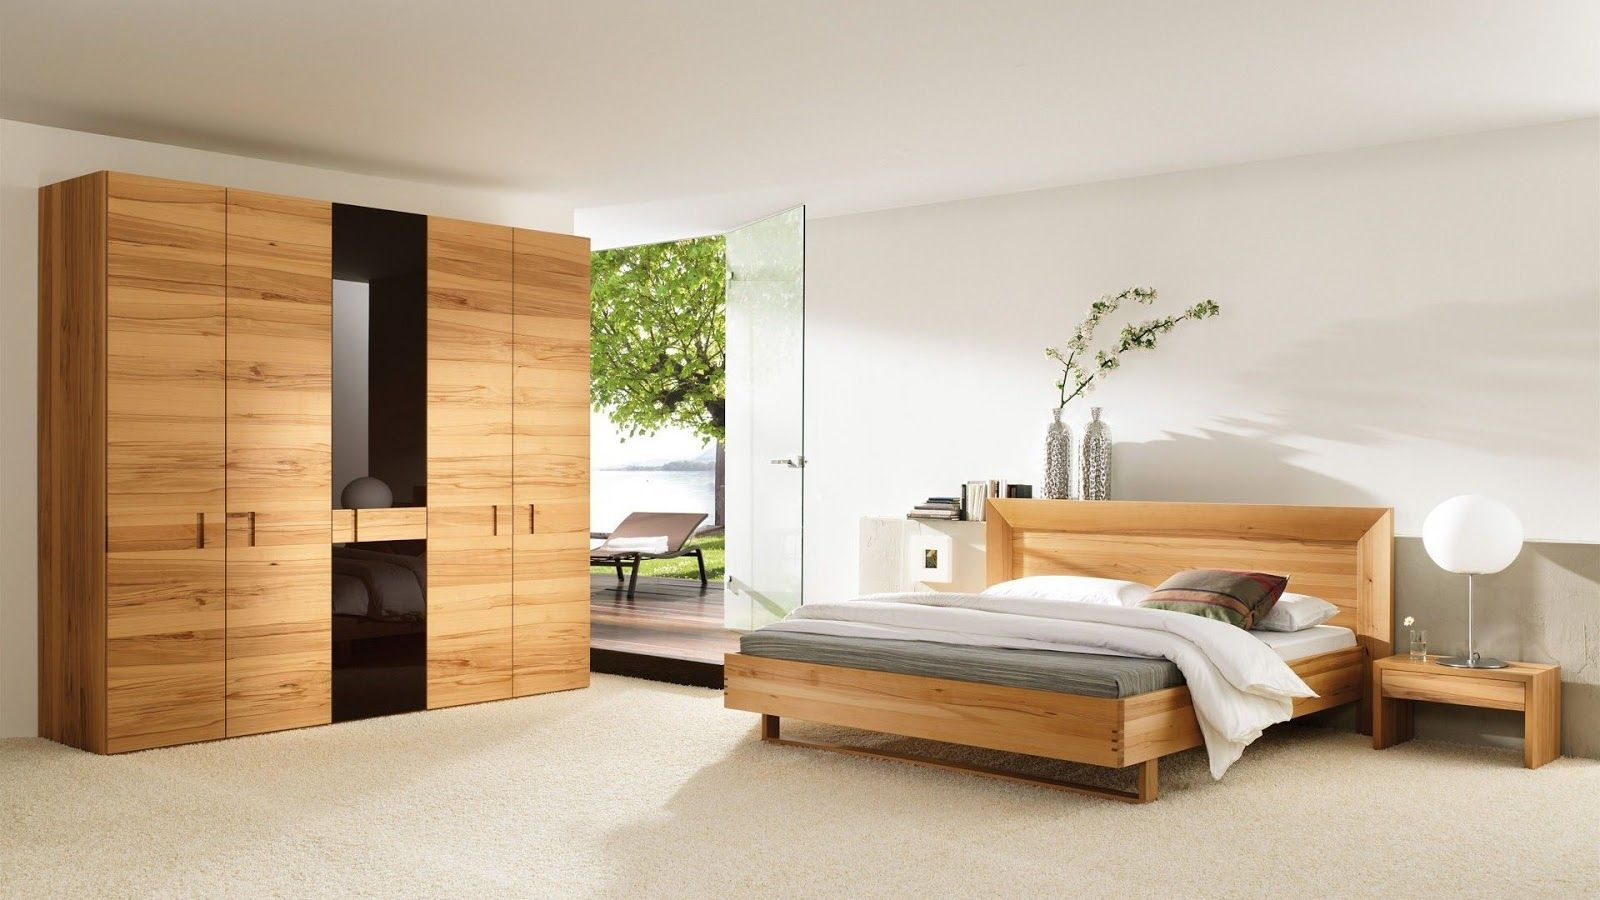 interesting simple bedroom design ideas with nice wardrobe closet decorathink - Nice Bedroom Designs Ideas